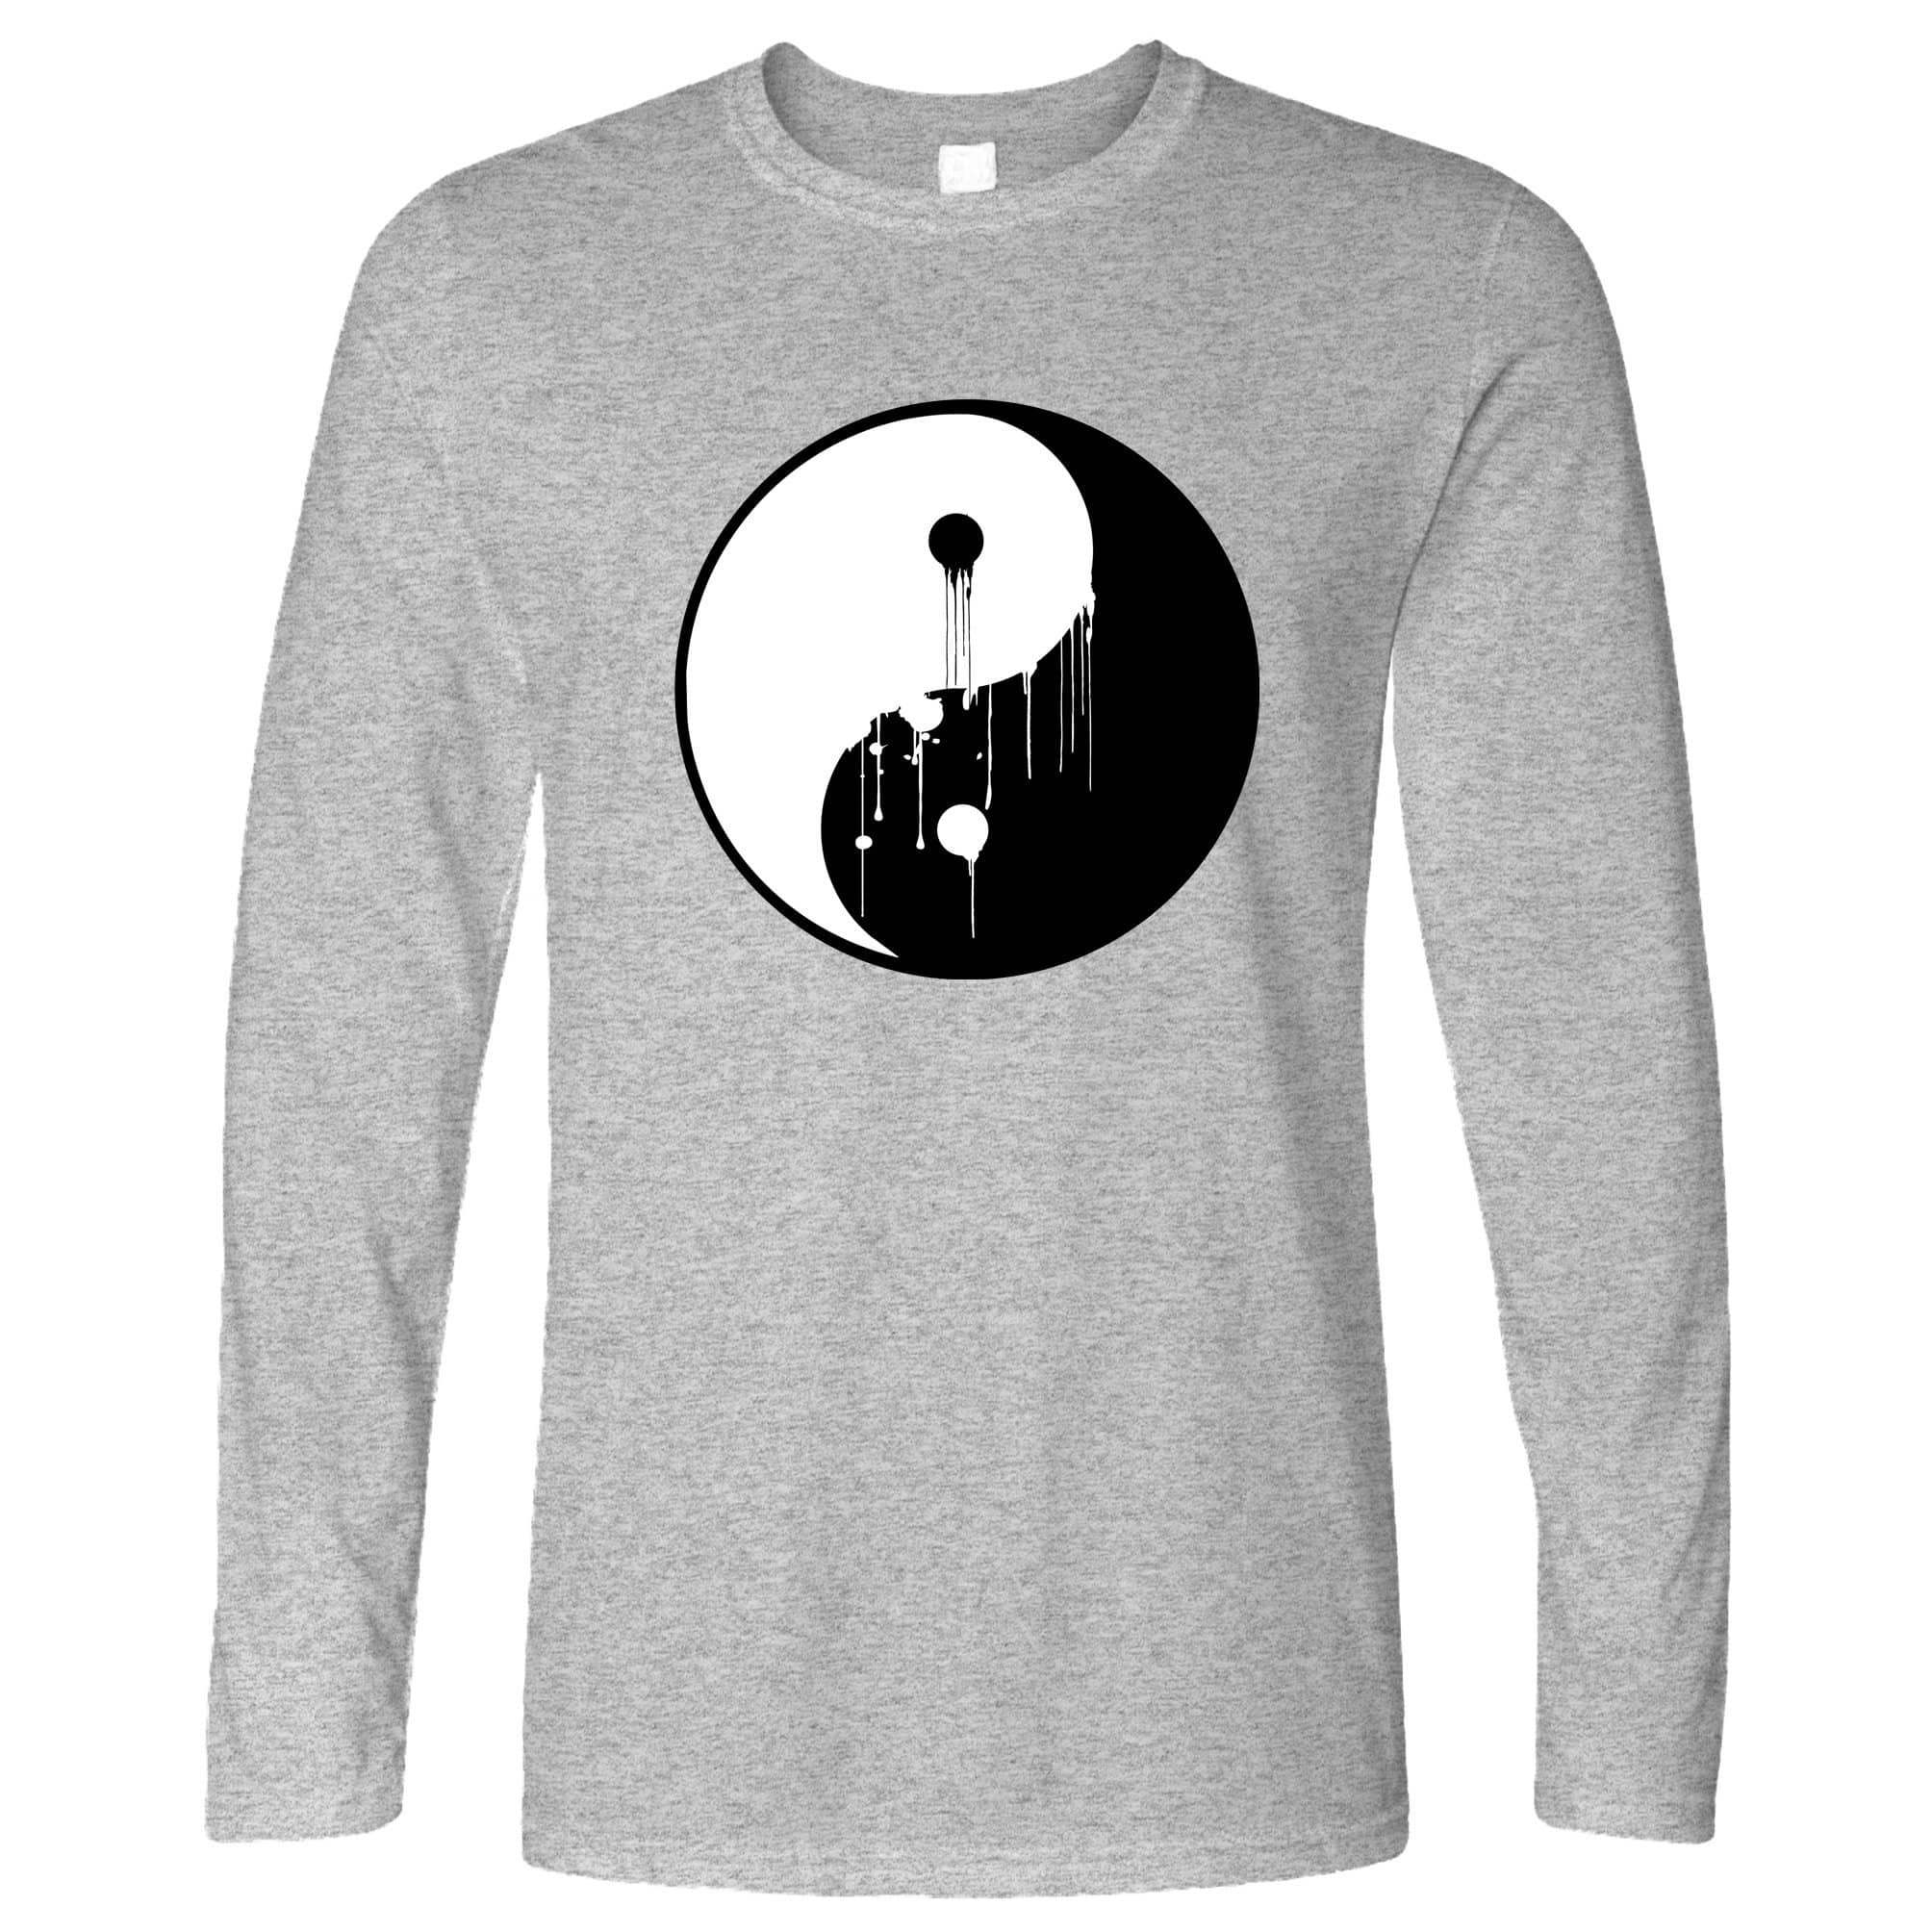 Art Long Sleeve Painted Dripping Ying Yang Balance Symbol T-Shirt